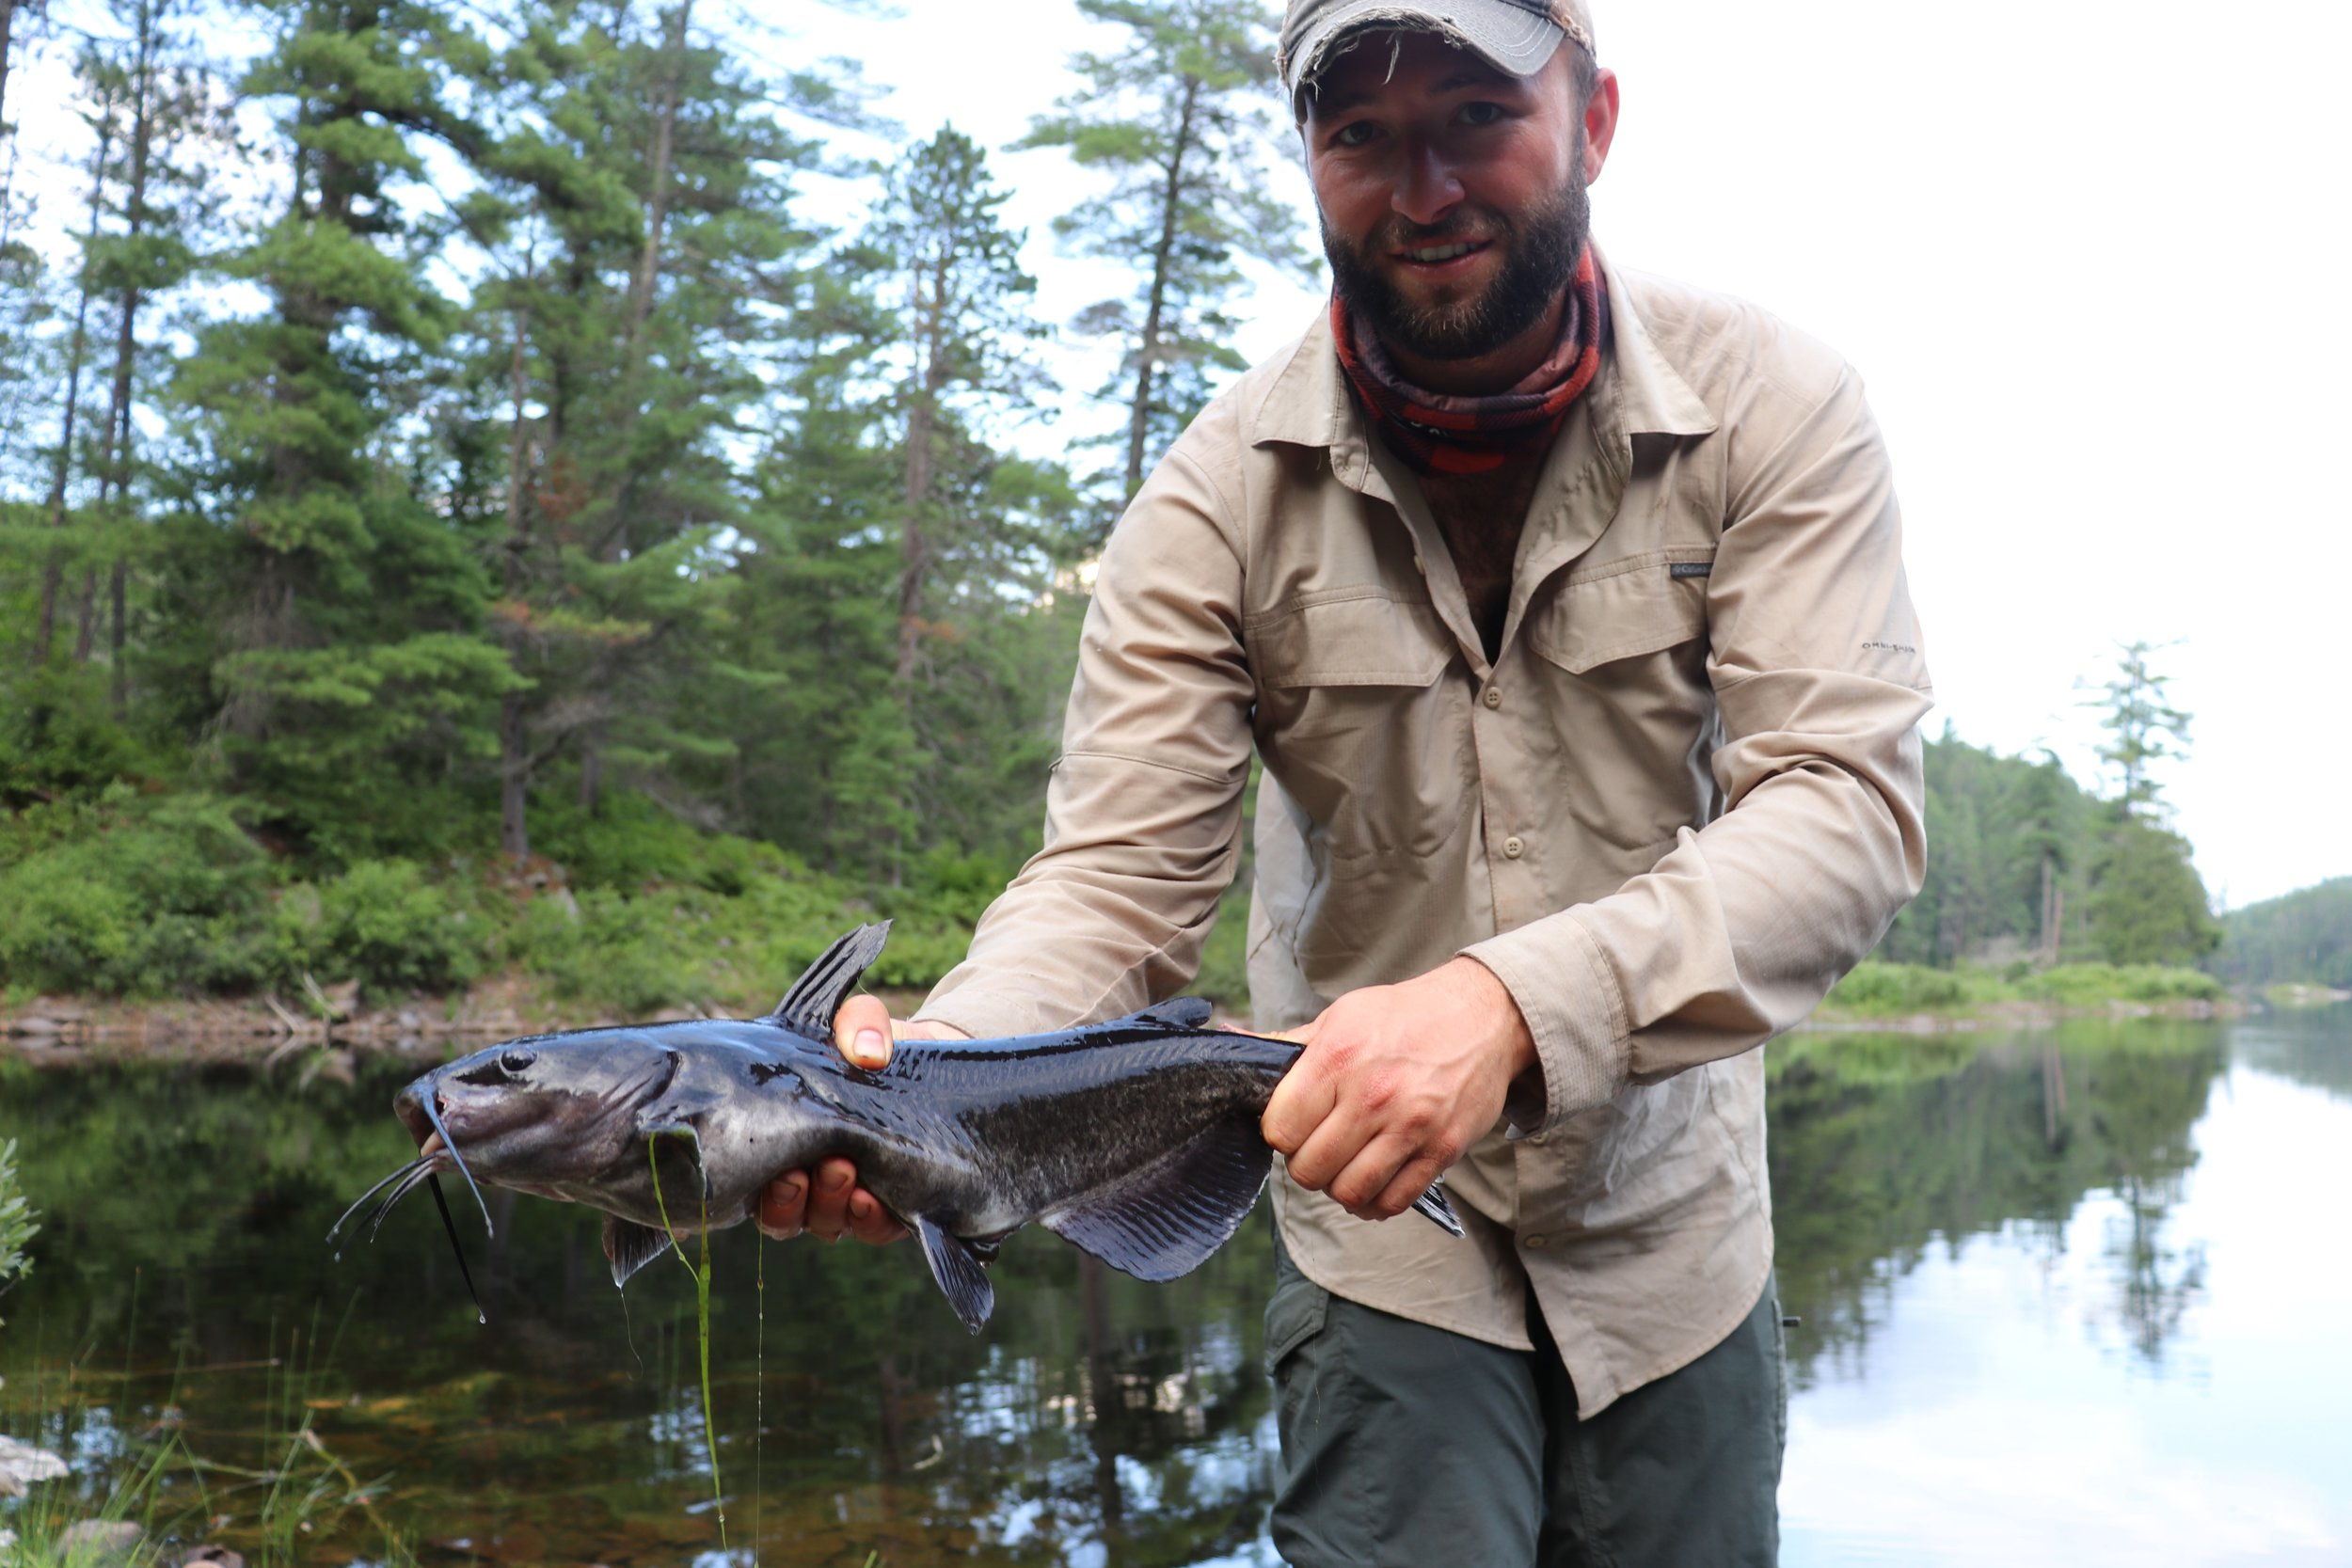 Catfish at the end of the 860m portage going into Radiant Lake